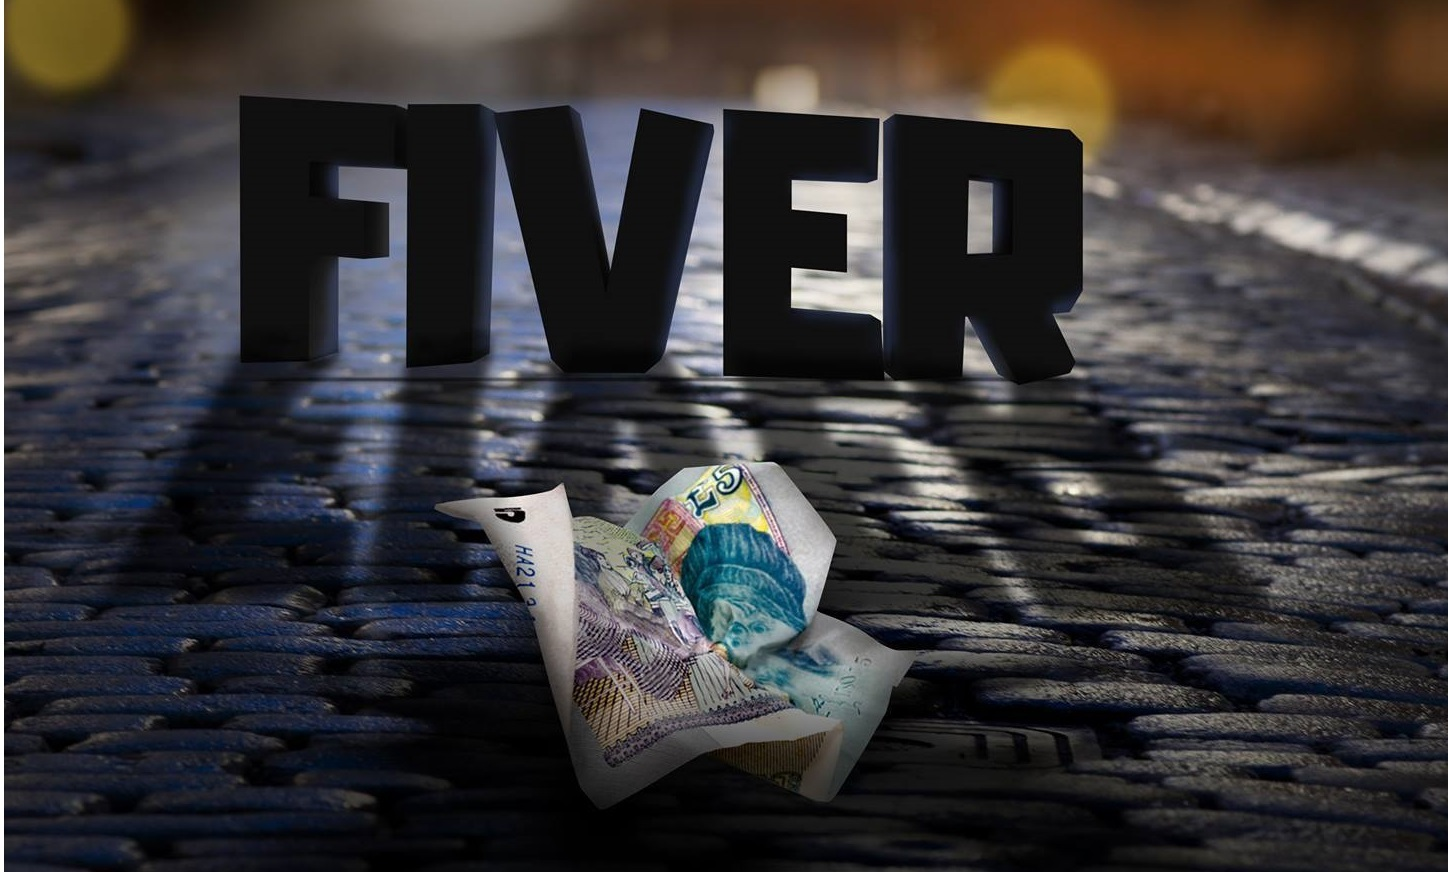 BWW Review: FIVER, Live At Z del